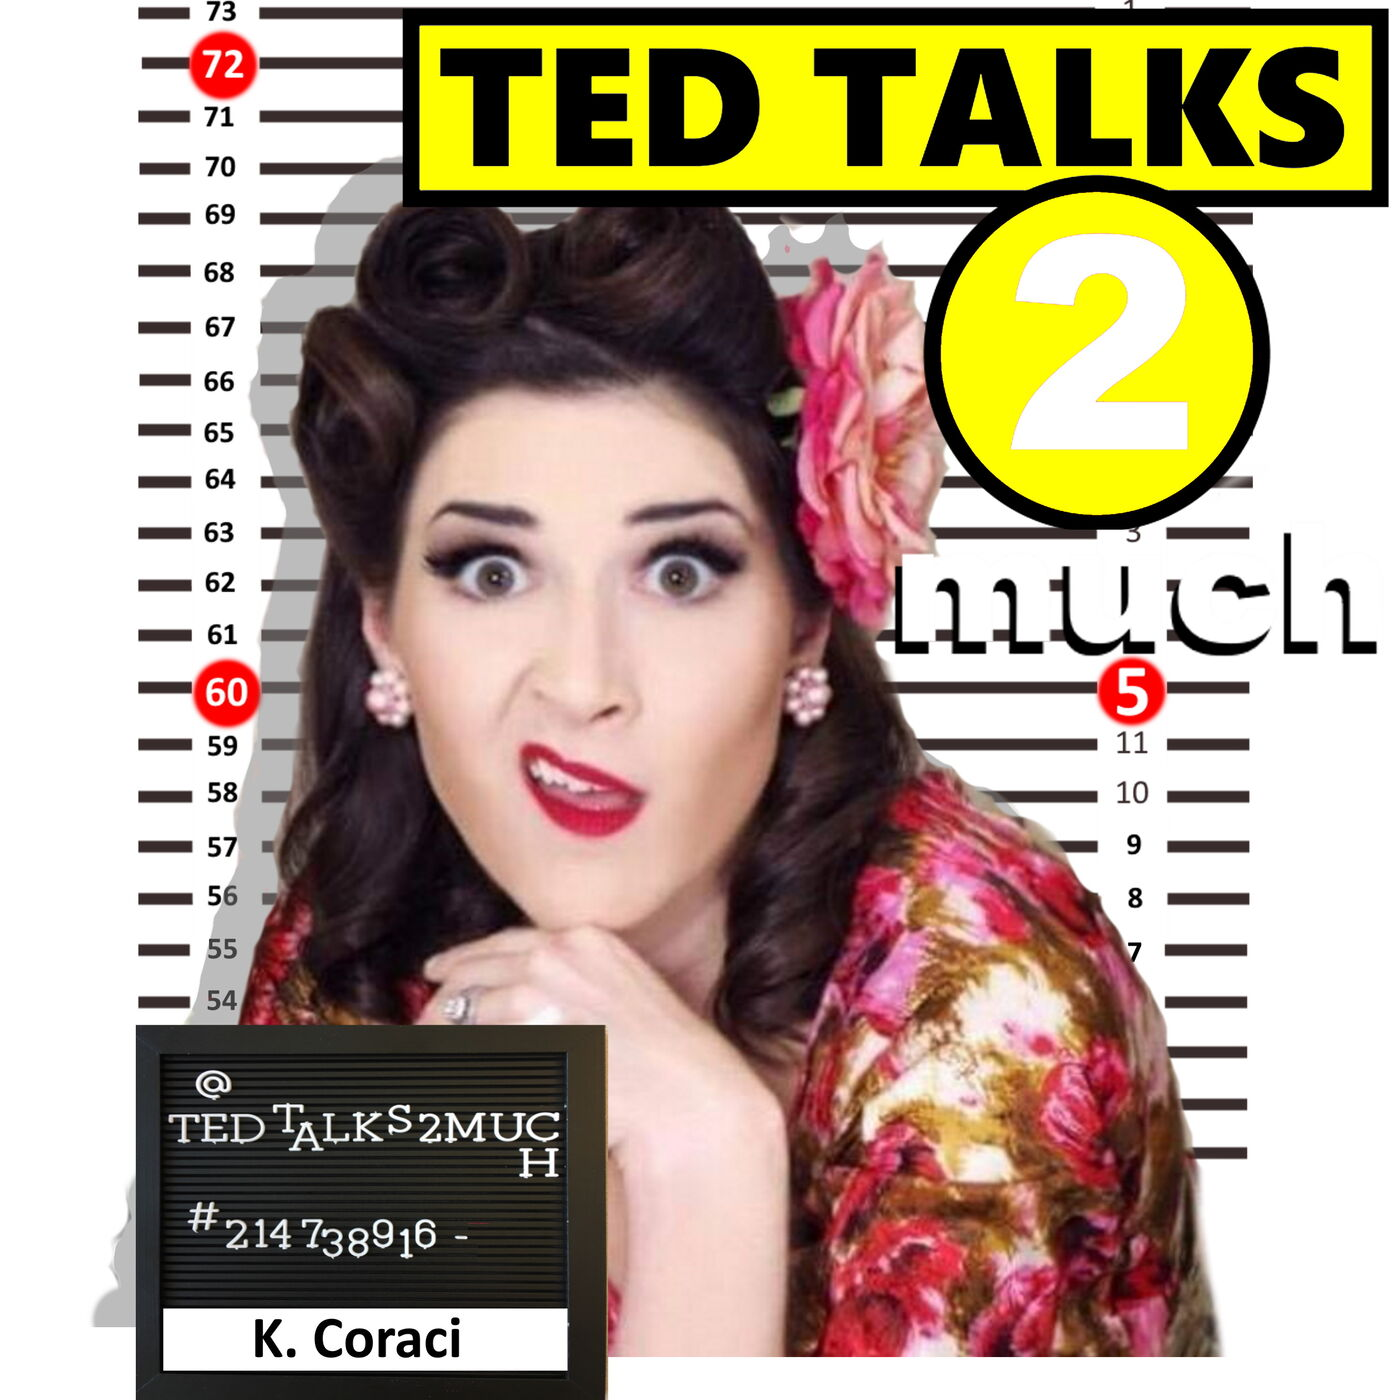 TED TALKS 2 Kara Coraci...about Jerry Springer, Improv and Drag Queen Bingo.